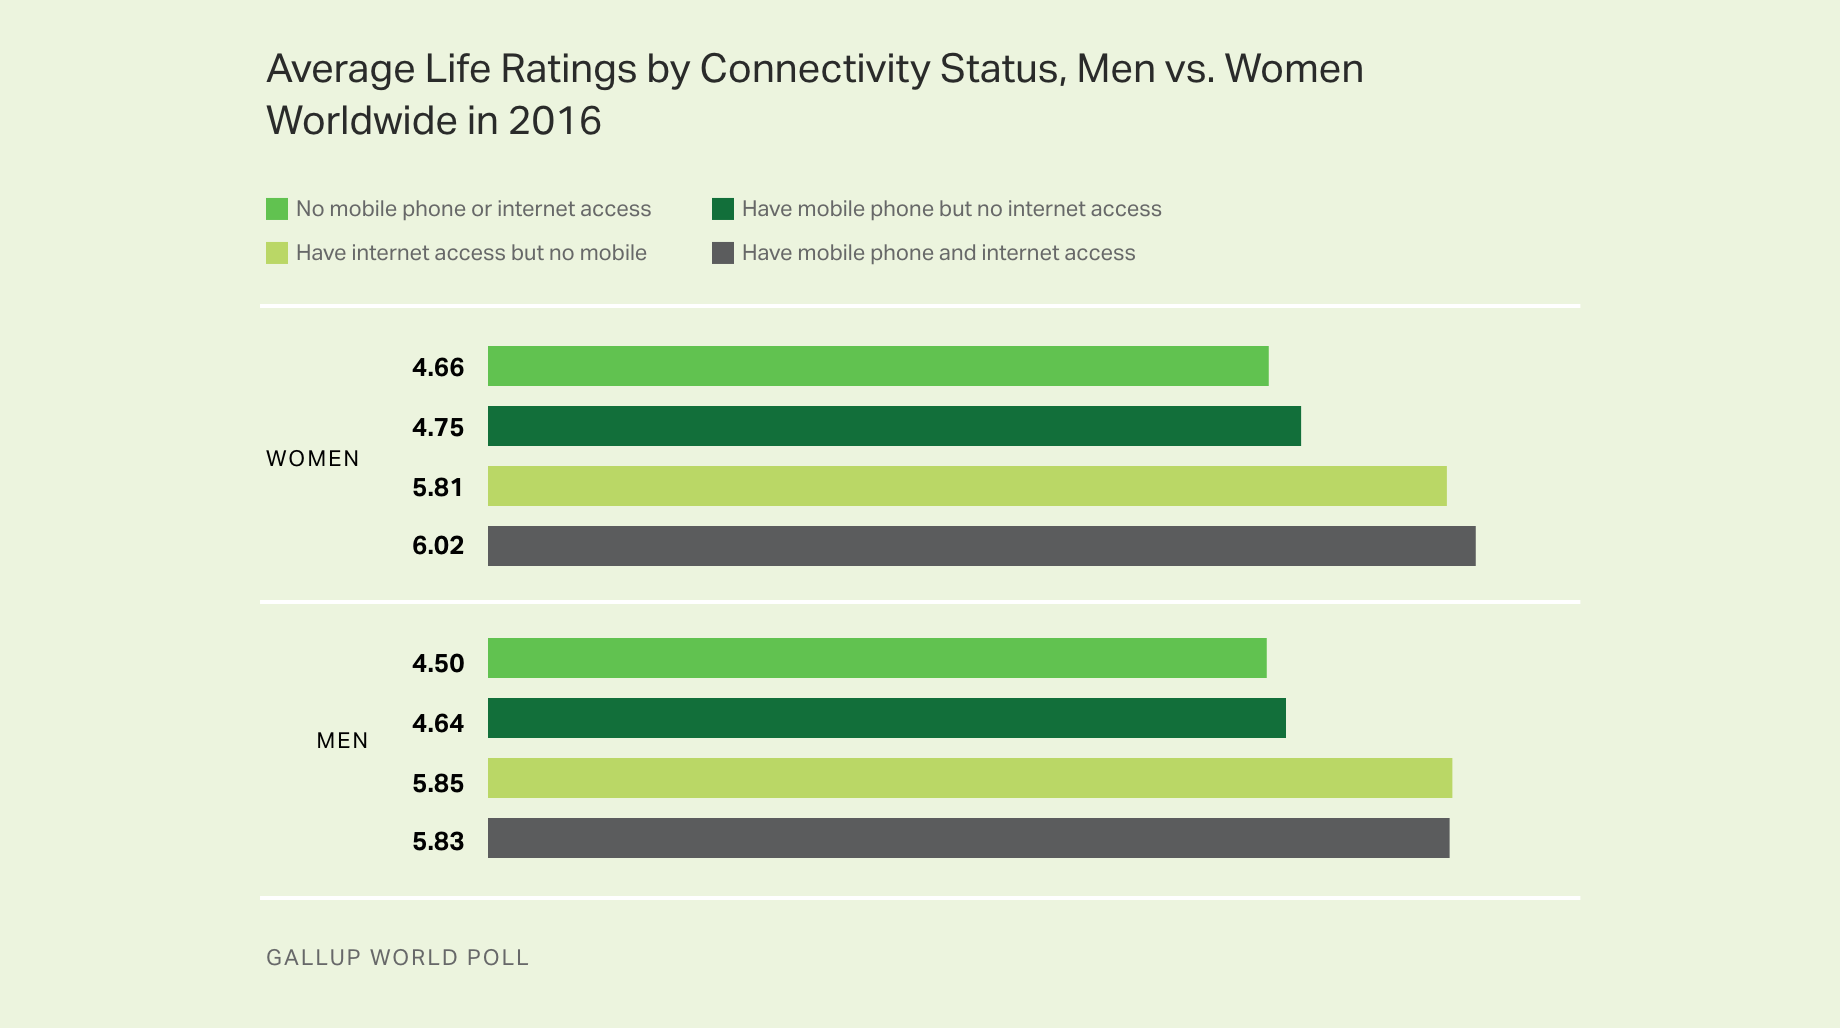 Line graph. Average life ratings by connectivity status, men vs. women, worldwide in 2016.